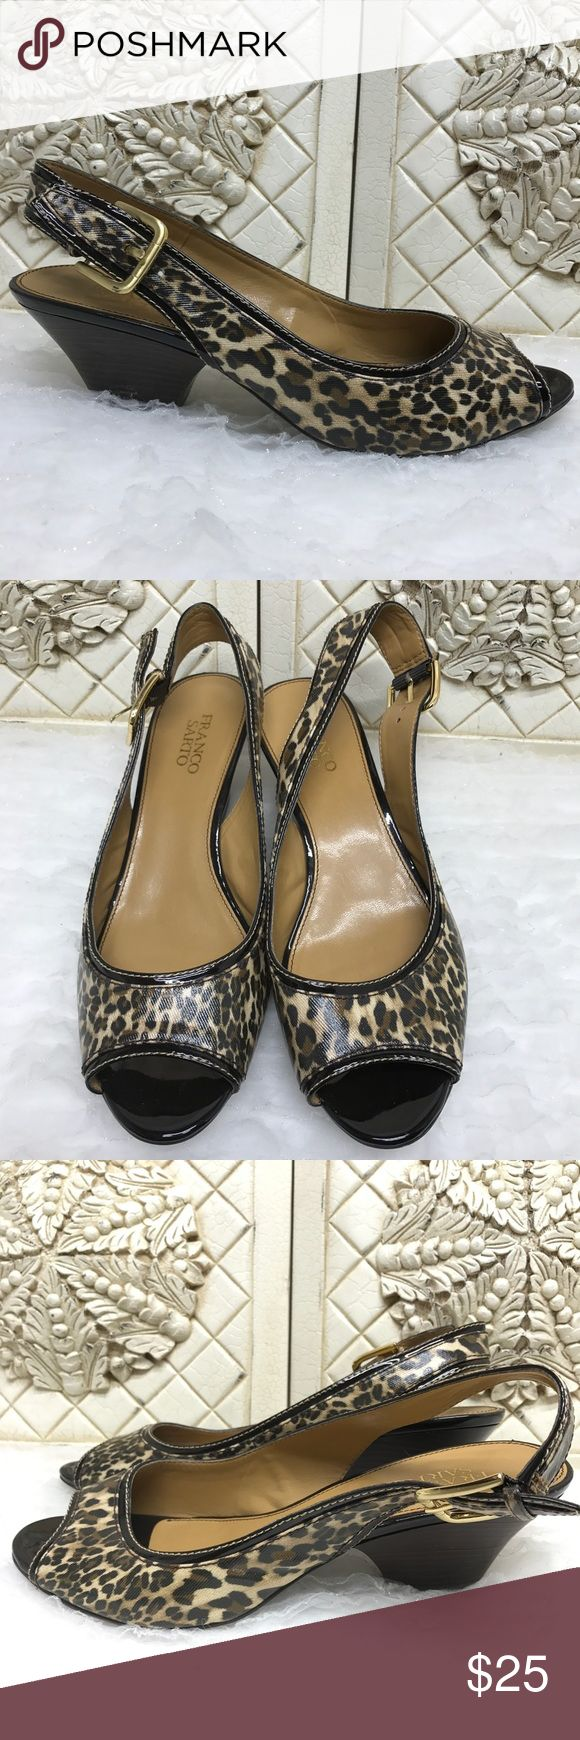 Franco Sarto | Cheetah Print Sling Back Shoes | 10 Size 10M. Man made upper. Shoes are in good however there is small peeling on the back heel of both shoes. Franco Sarto Shoes